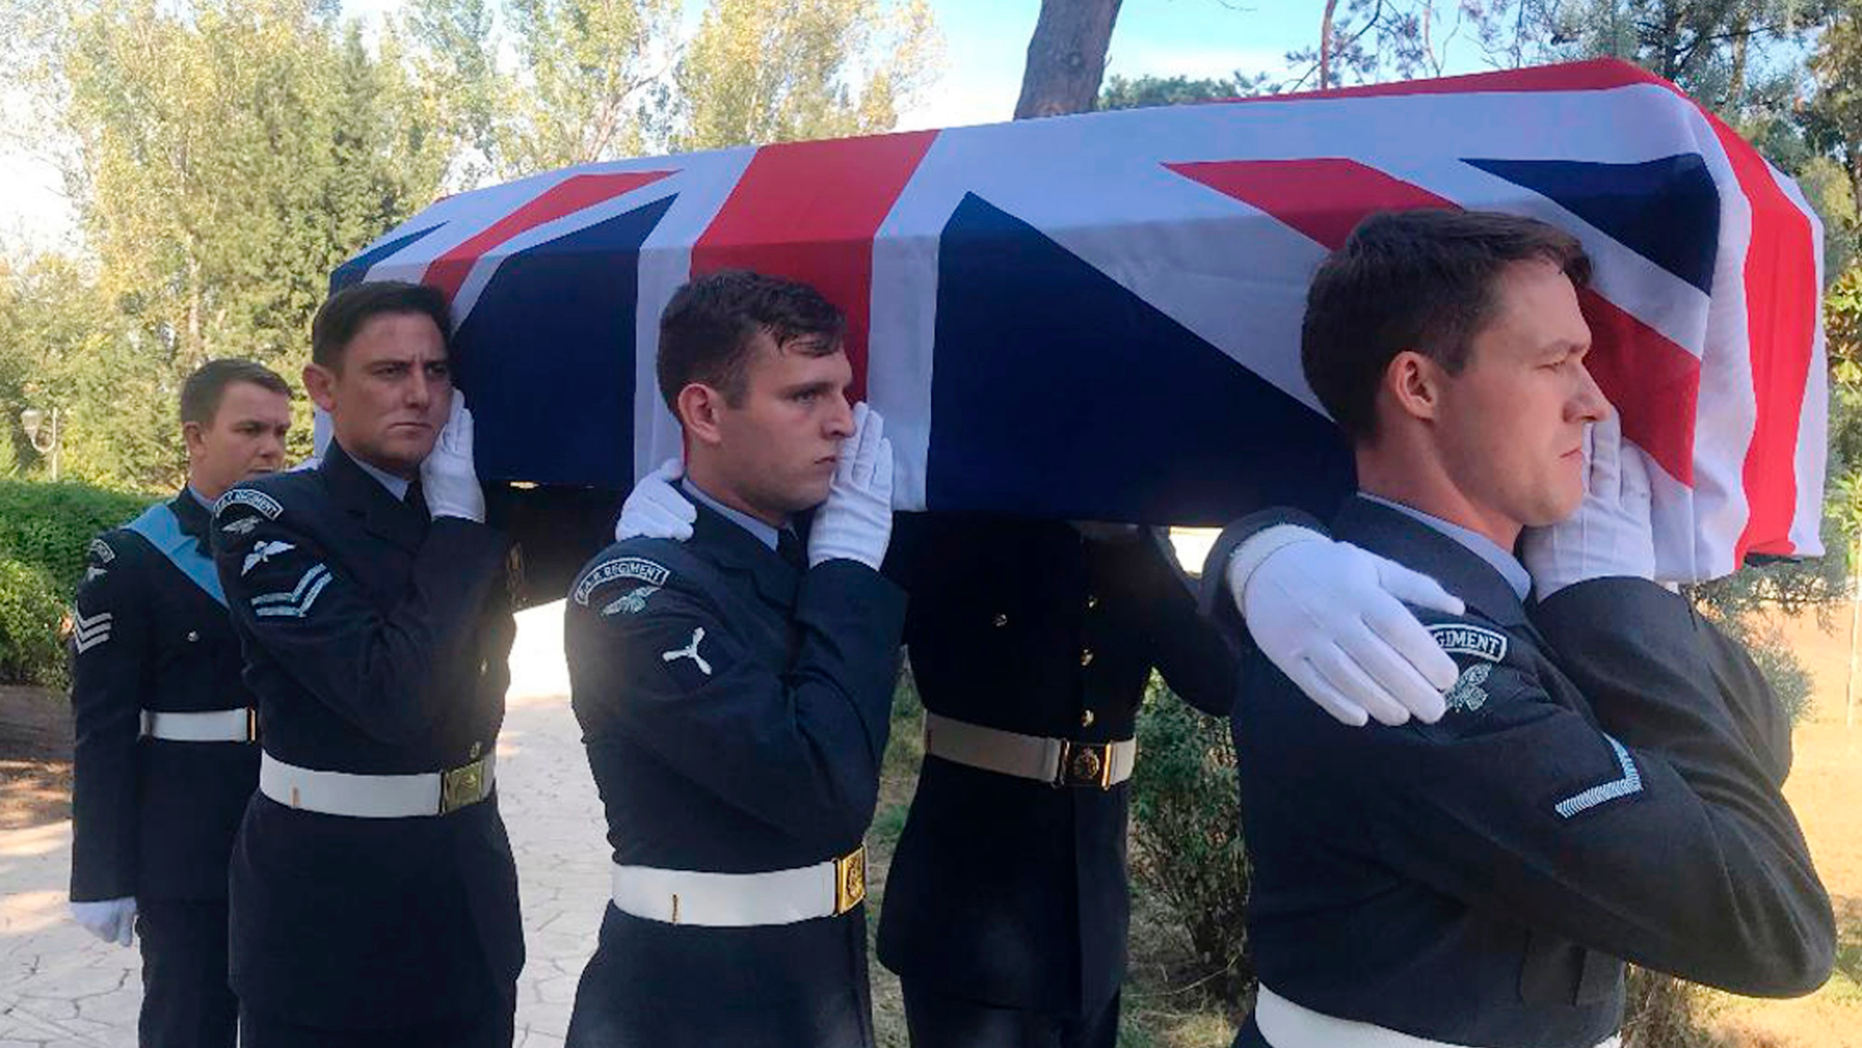 British soldiers carry a coffin of a British serviceman at the Grand Park in Tirana, Wednesday, Oct. 24, 2018, as seven British military personnel from a plane that crashed in Albania during World War II are laid to rest almost 75-years after their death.  It was Sgt. John Thompson's ring that was hidden from the then communist officials, that has enabled searchers to locate and identify his remains, and those of his fellow crew members, after they crashed into a mountainside in Biza, Albania, on Oct. 29, 1944, and they are finally interred during an official funeral ceremony Wednesday in the Albanian capital. (AP Photo/Llazar Semini)